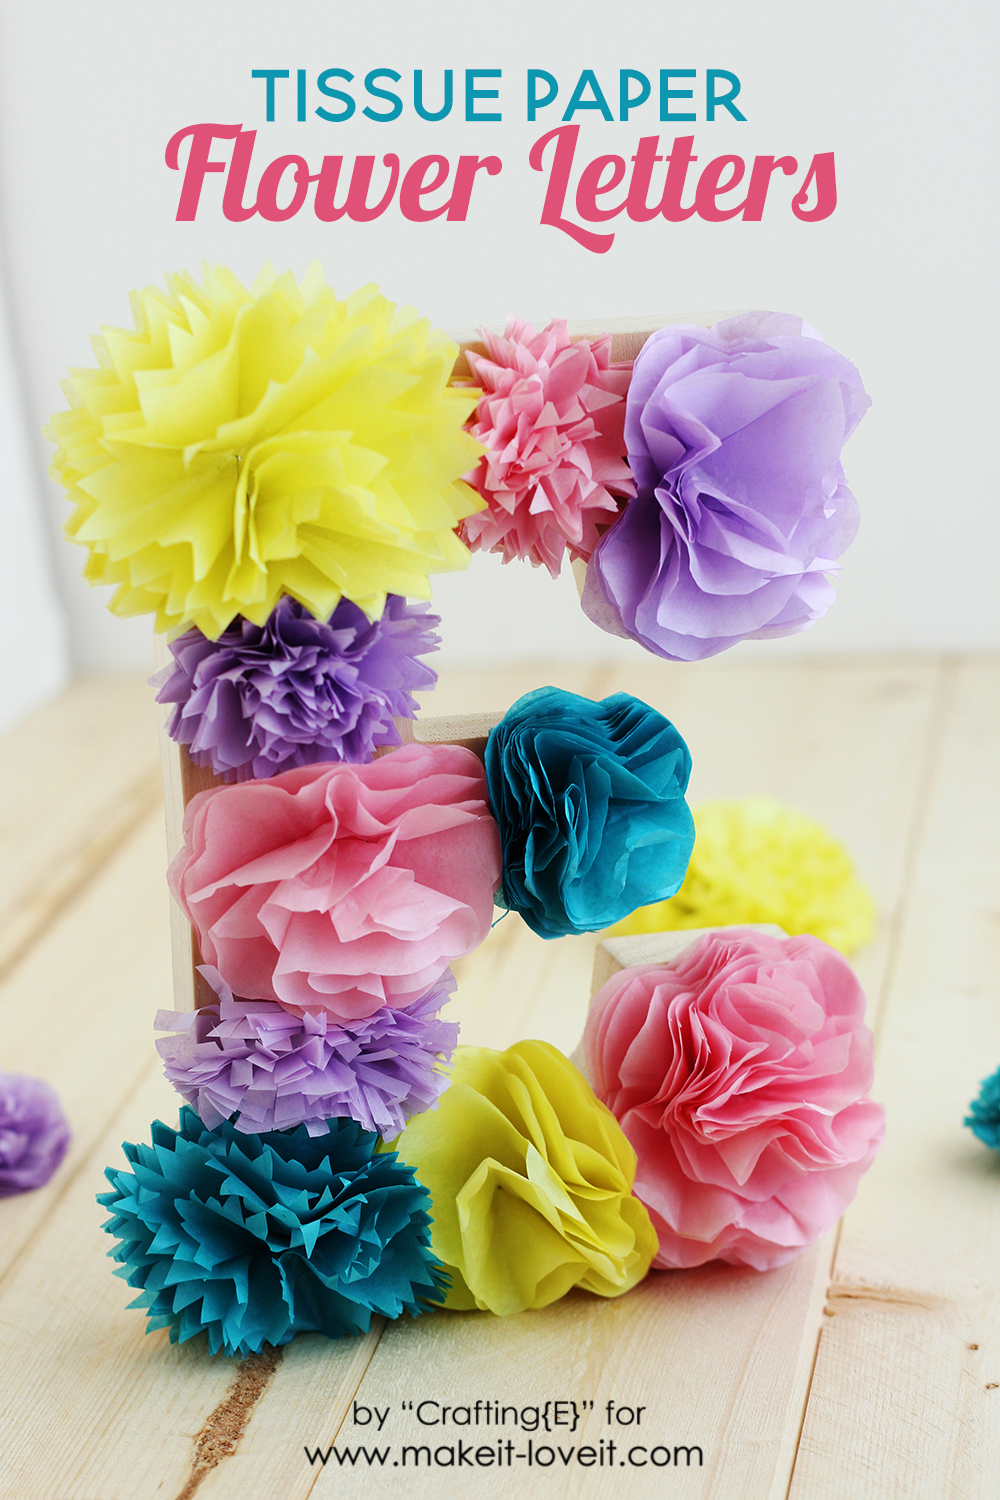 How To Make Tissue Paper Flower Letters | via www.makeit-loveit.com